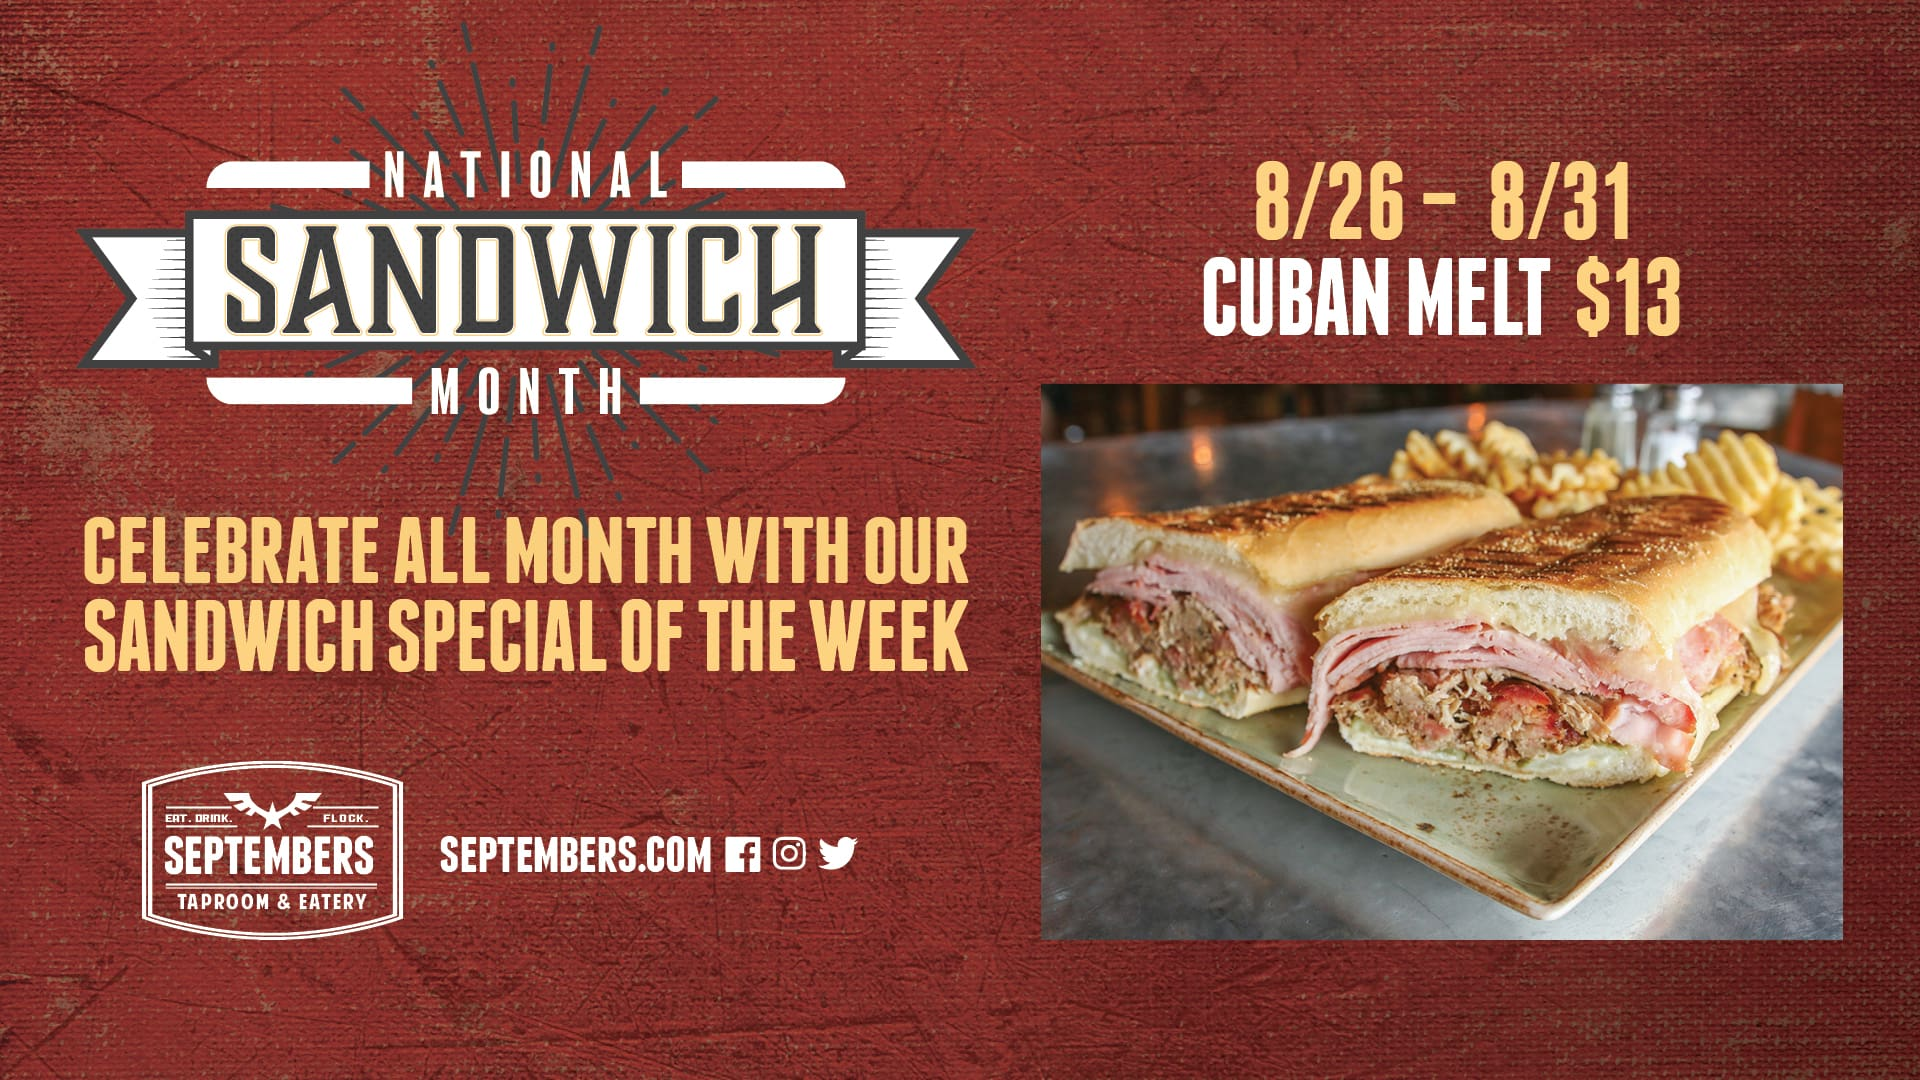 National Sandwich Month - Cuban Melt